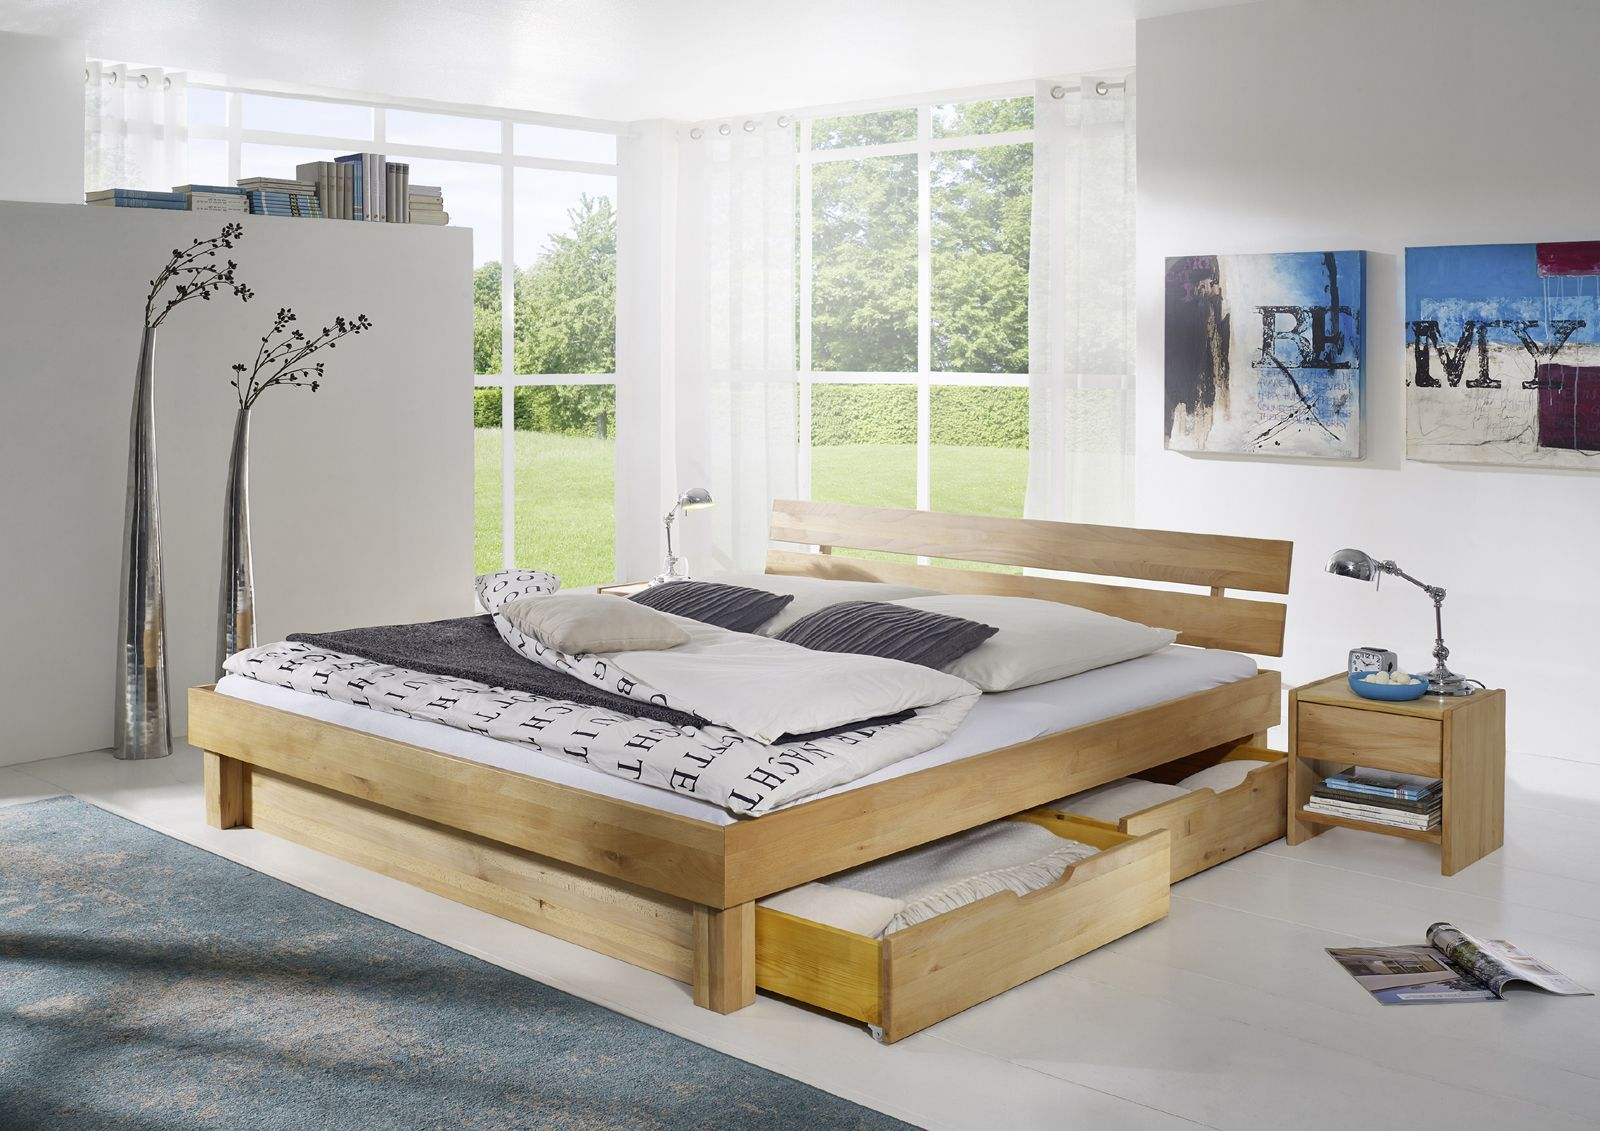 bettrahmen 200x200 latest paletten bett x wunderbar auf dekoideen fur ihr zuhause auch mit. Black Bedroom Furniture Sets. Home Design Ideas